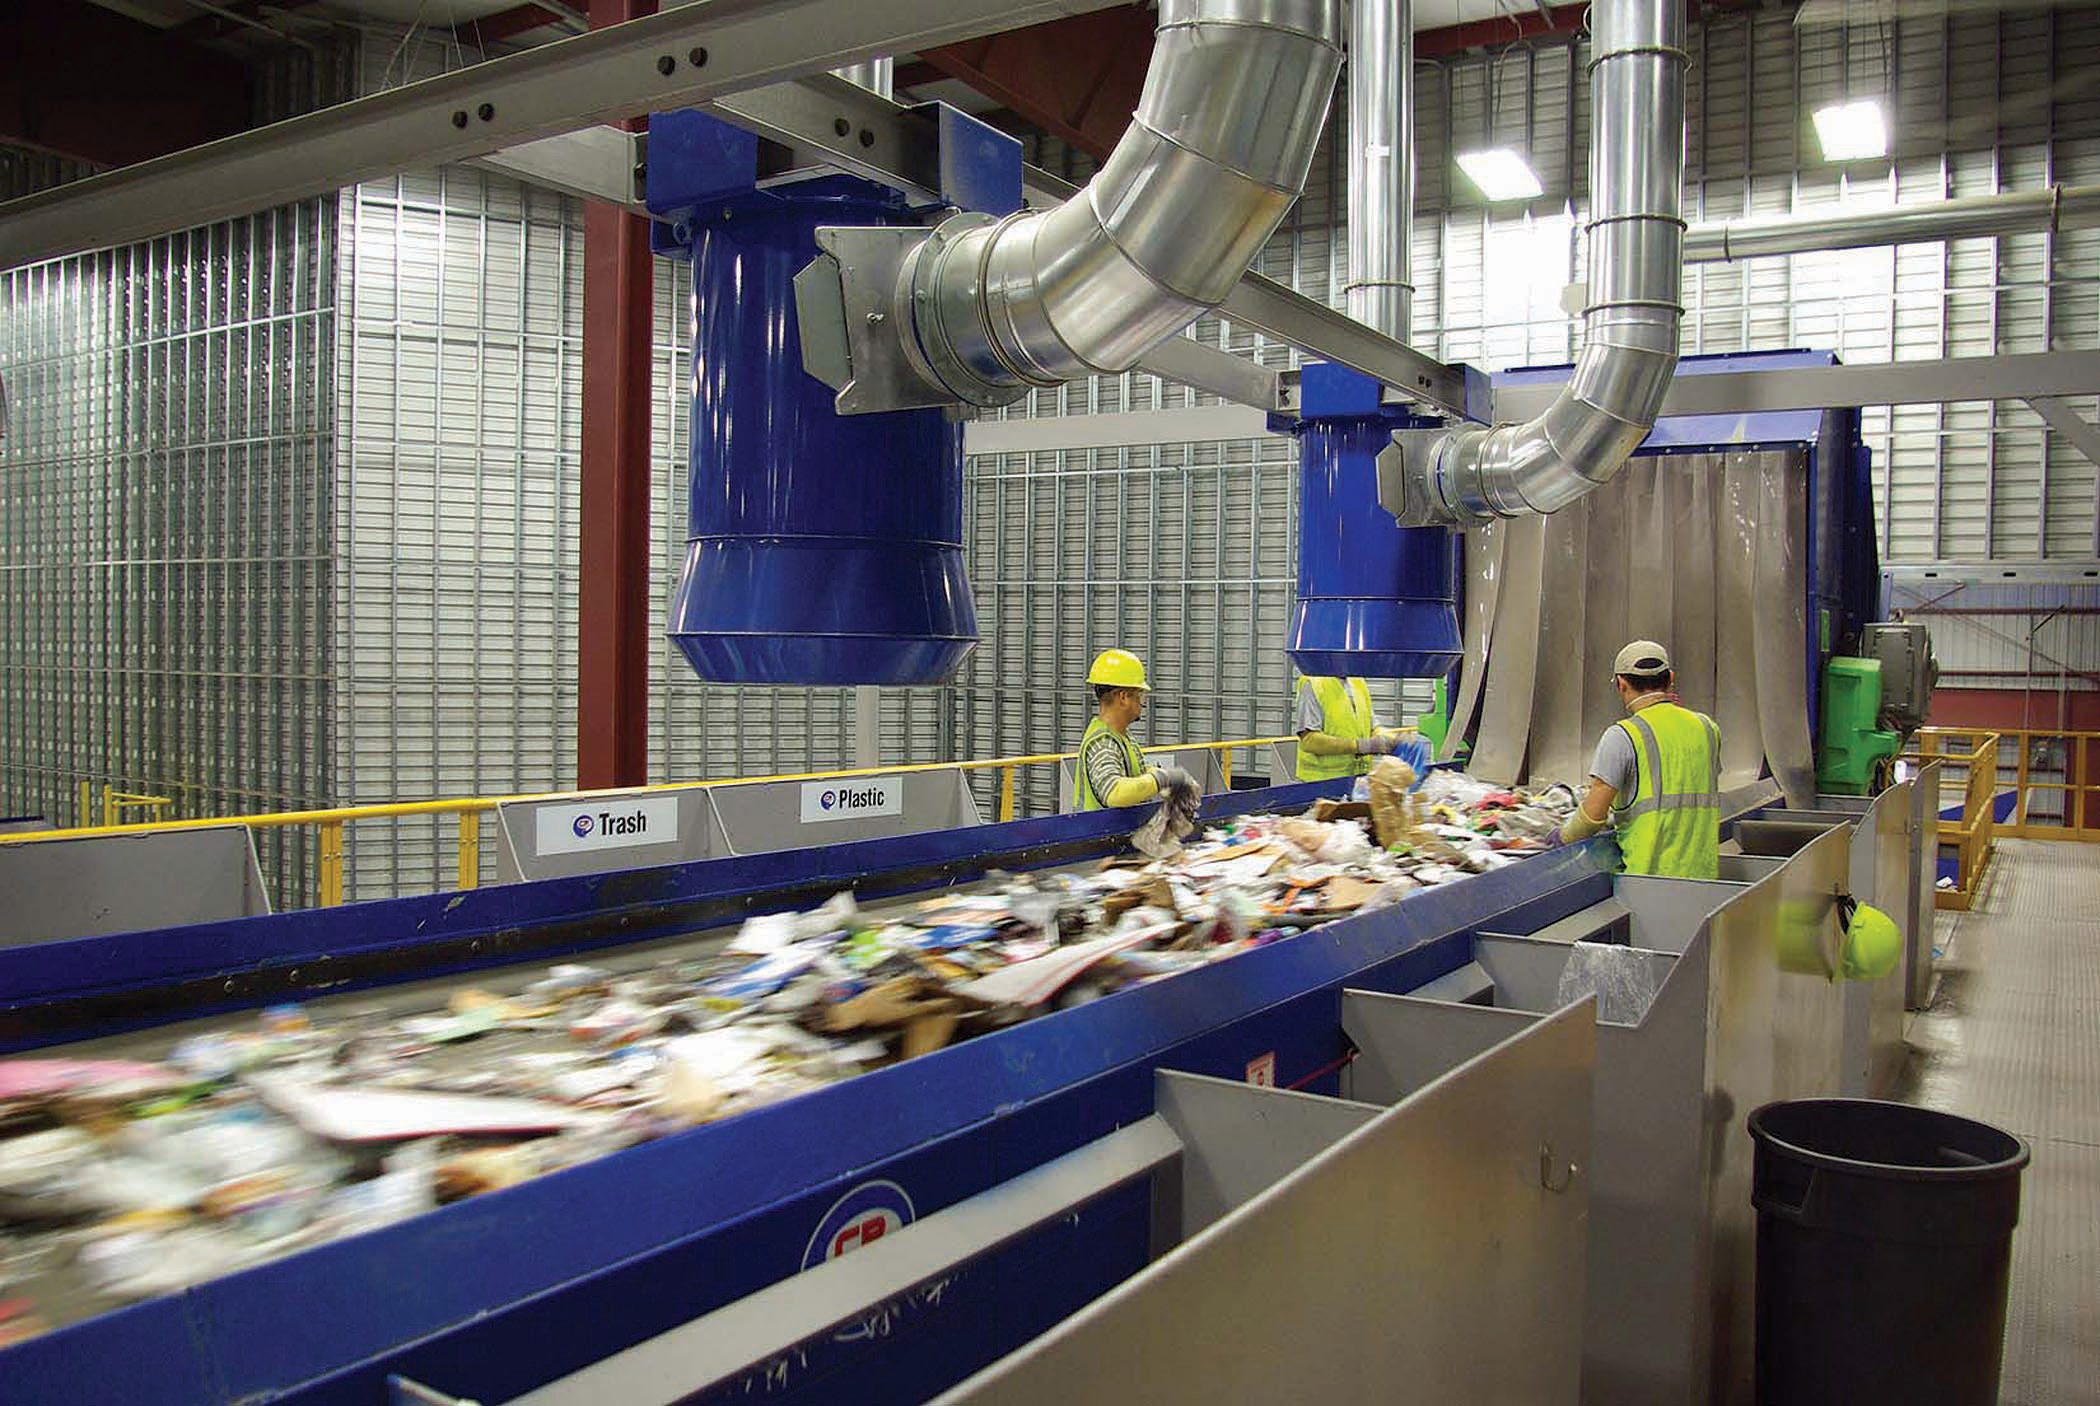 With 90 recycling centers nationwide, recycling is a core component of how Republic Services helps preserve our planet.